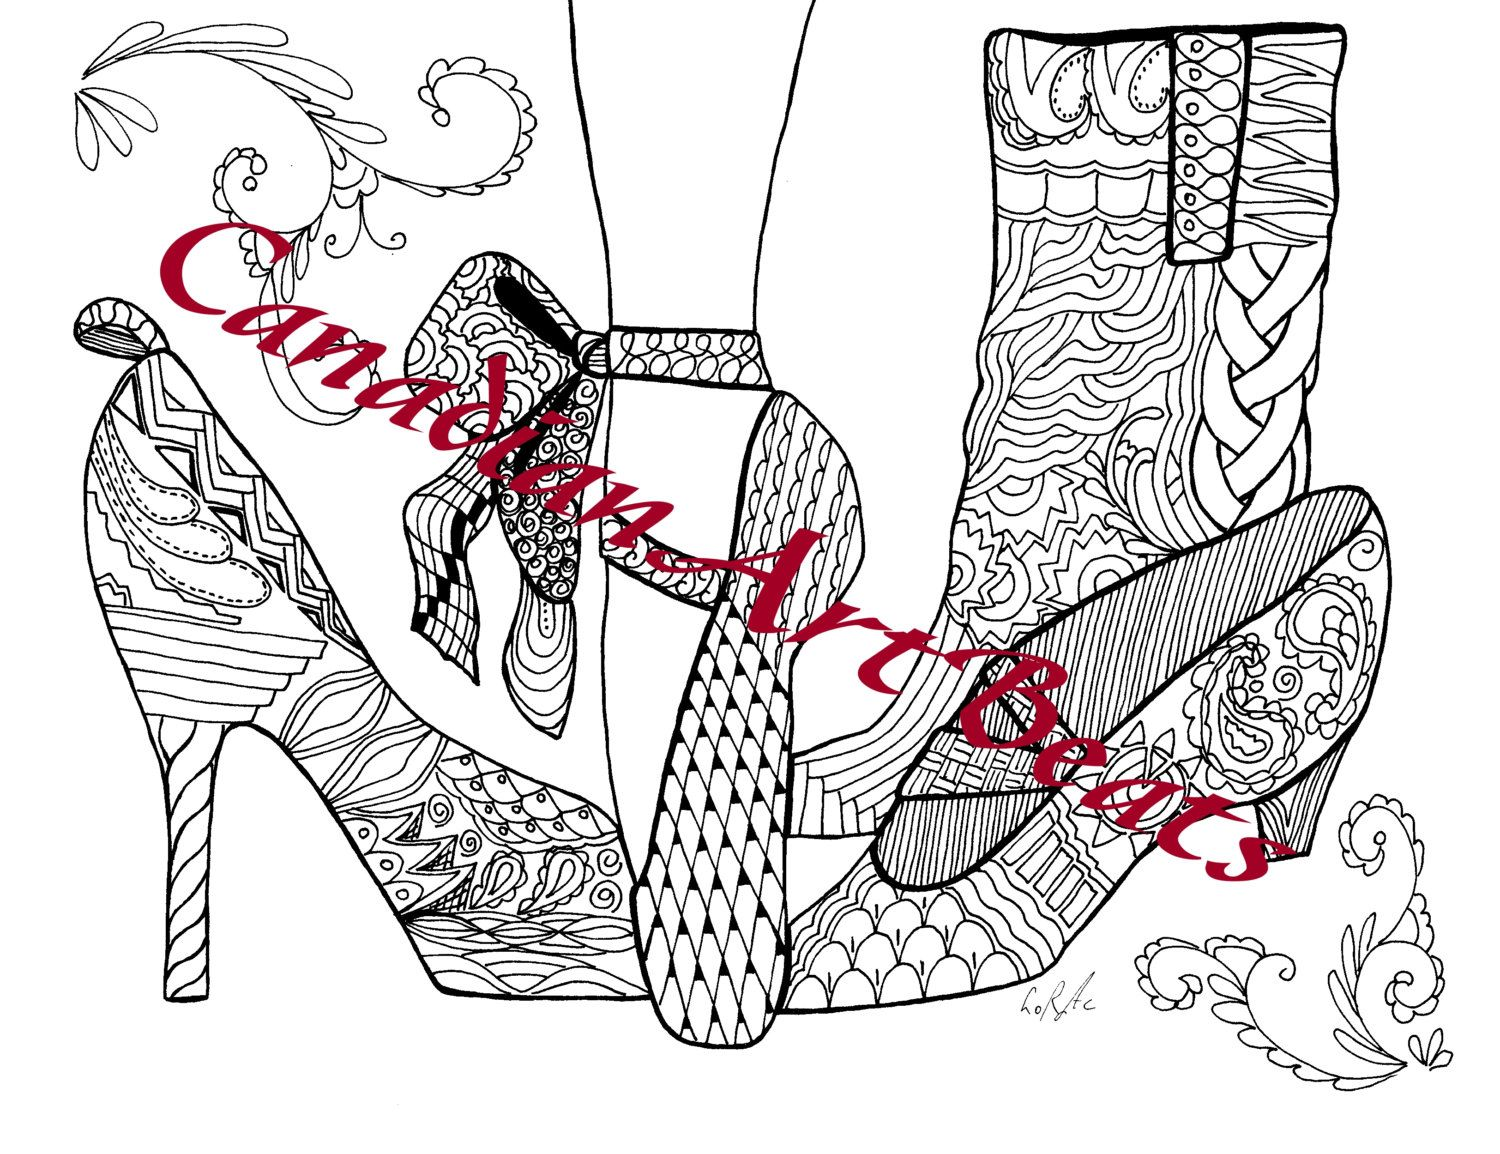 Shoes Ballet Shoes Boots Pumps Accessories Coloring Page Printable Downloadable Art By Canadianartbeats On Etsy